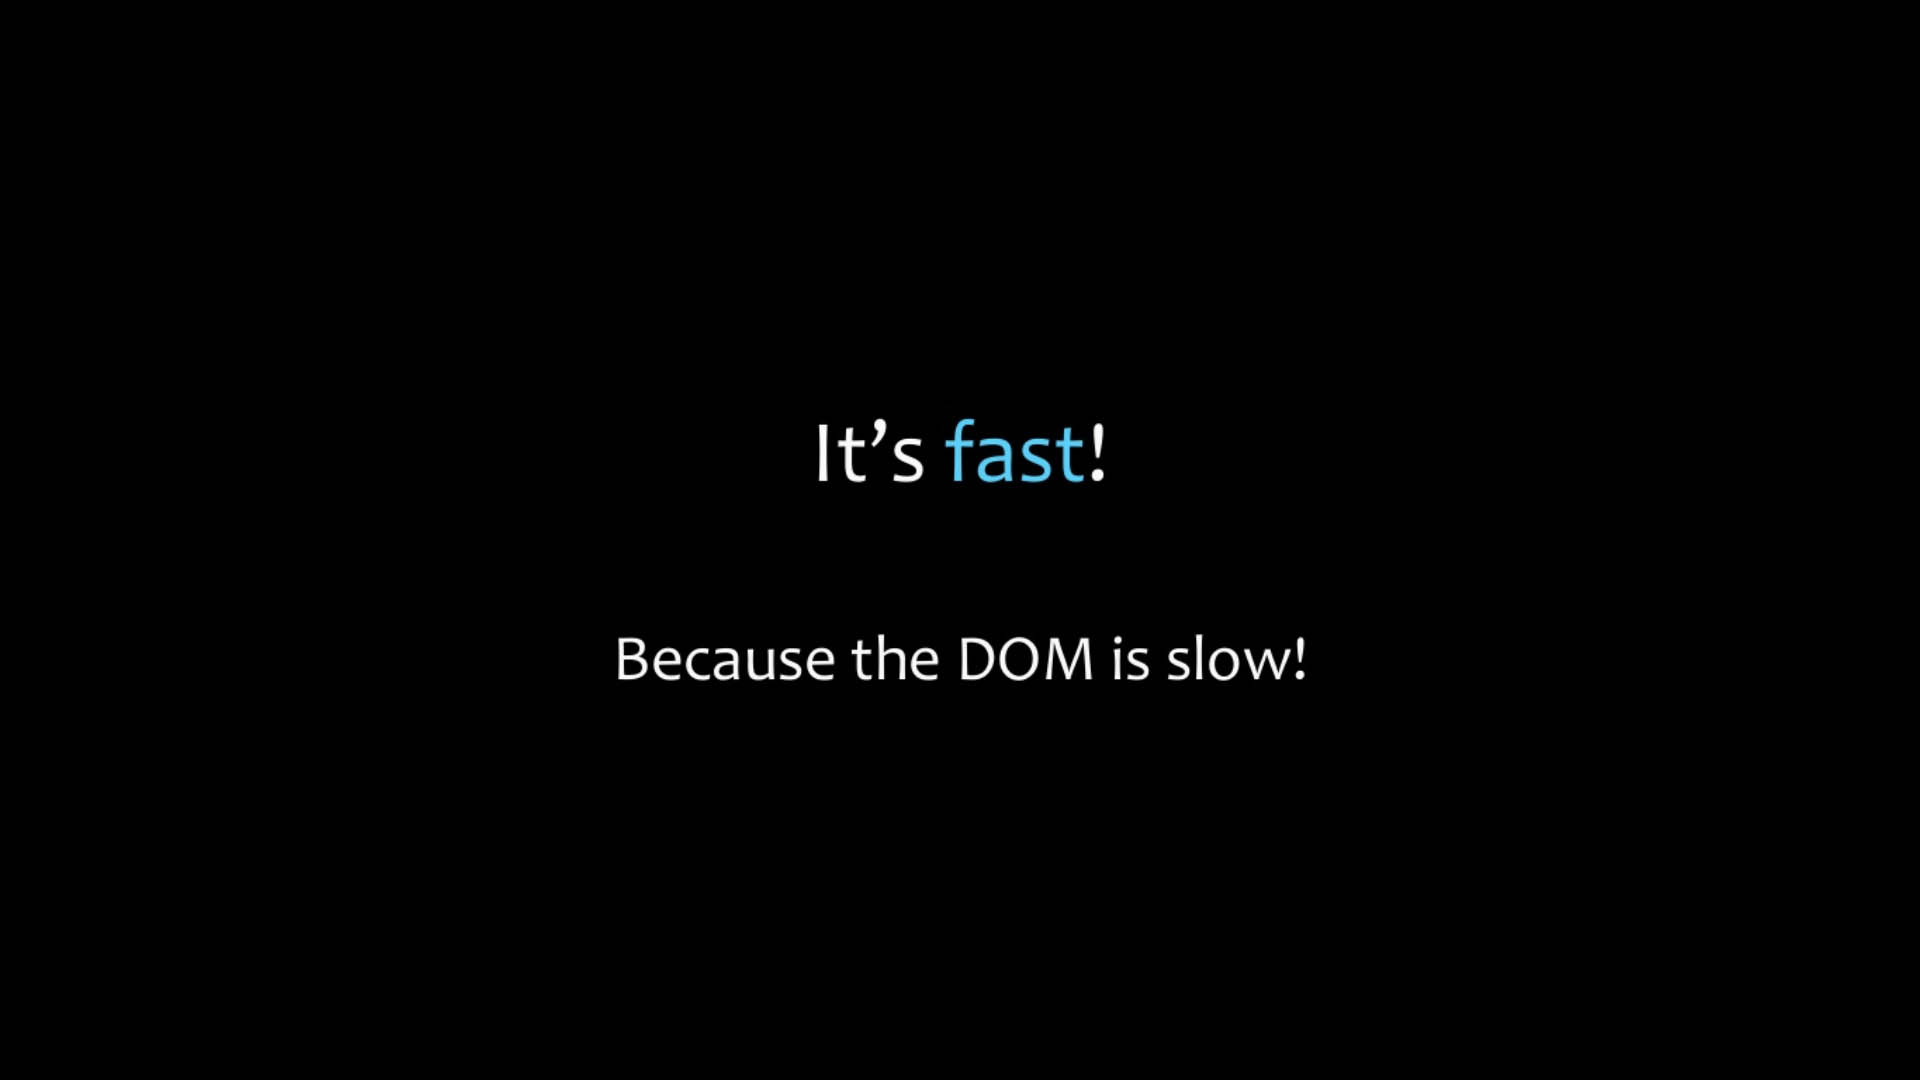 ItsFast